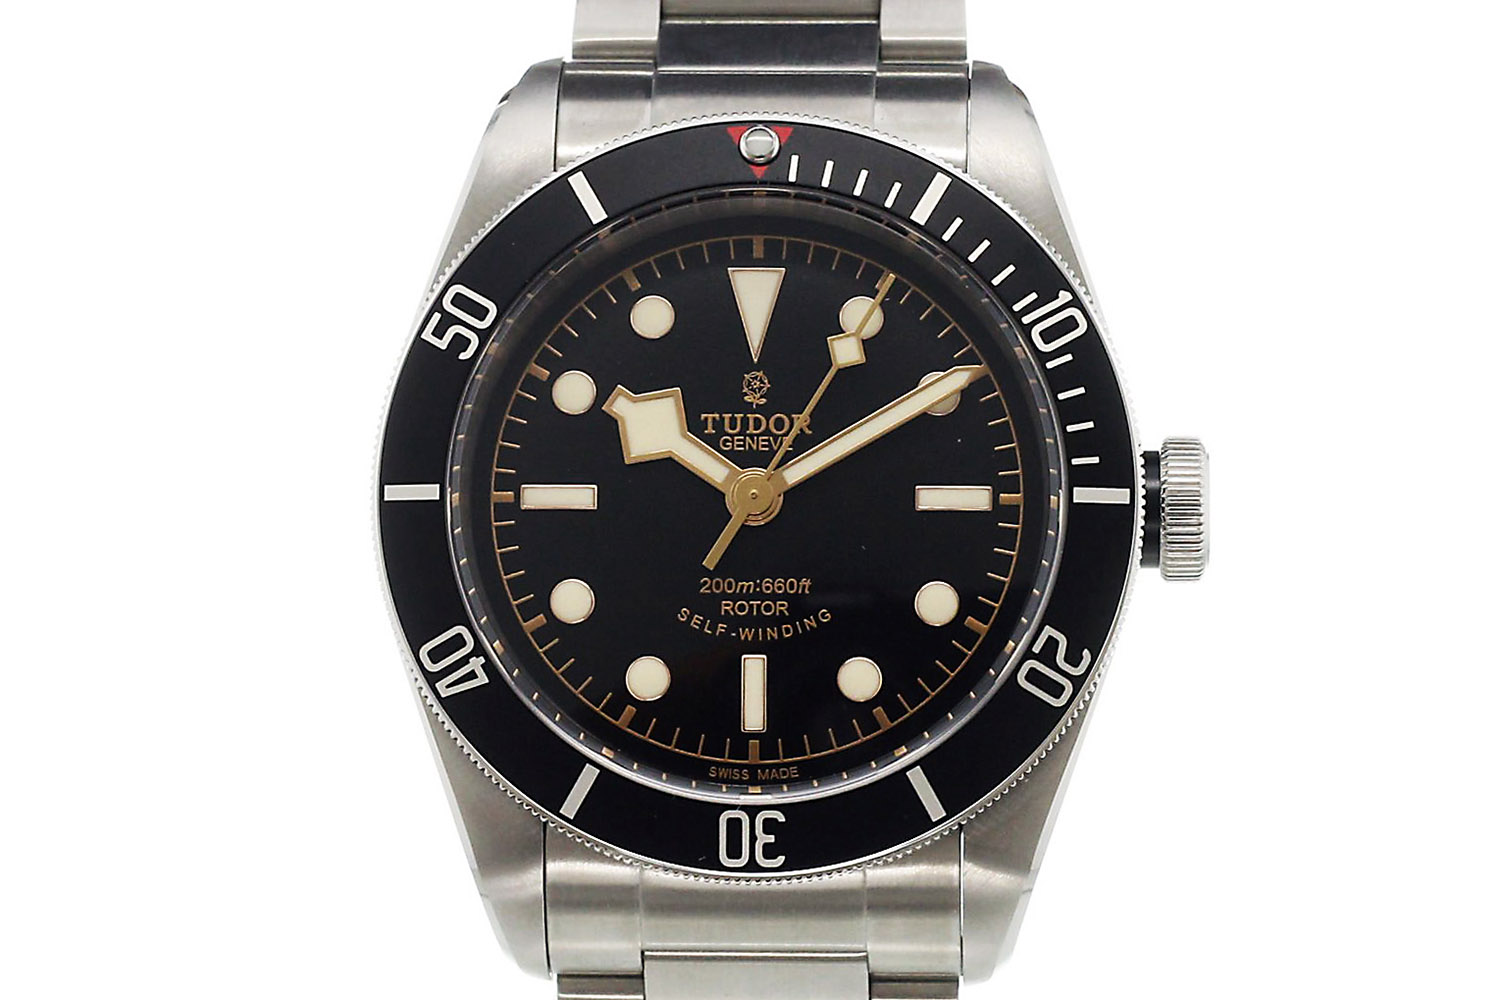 5 Cool Finds Chronext - 5 Essential Dive Watches - Tudor Black Bay Black 79220N